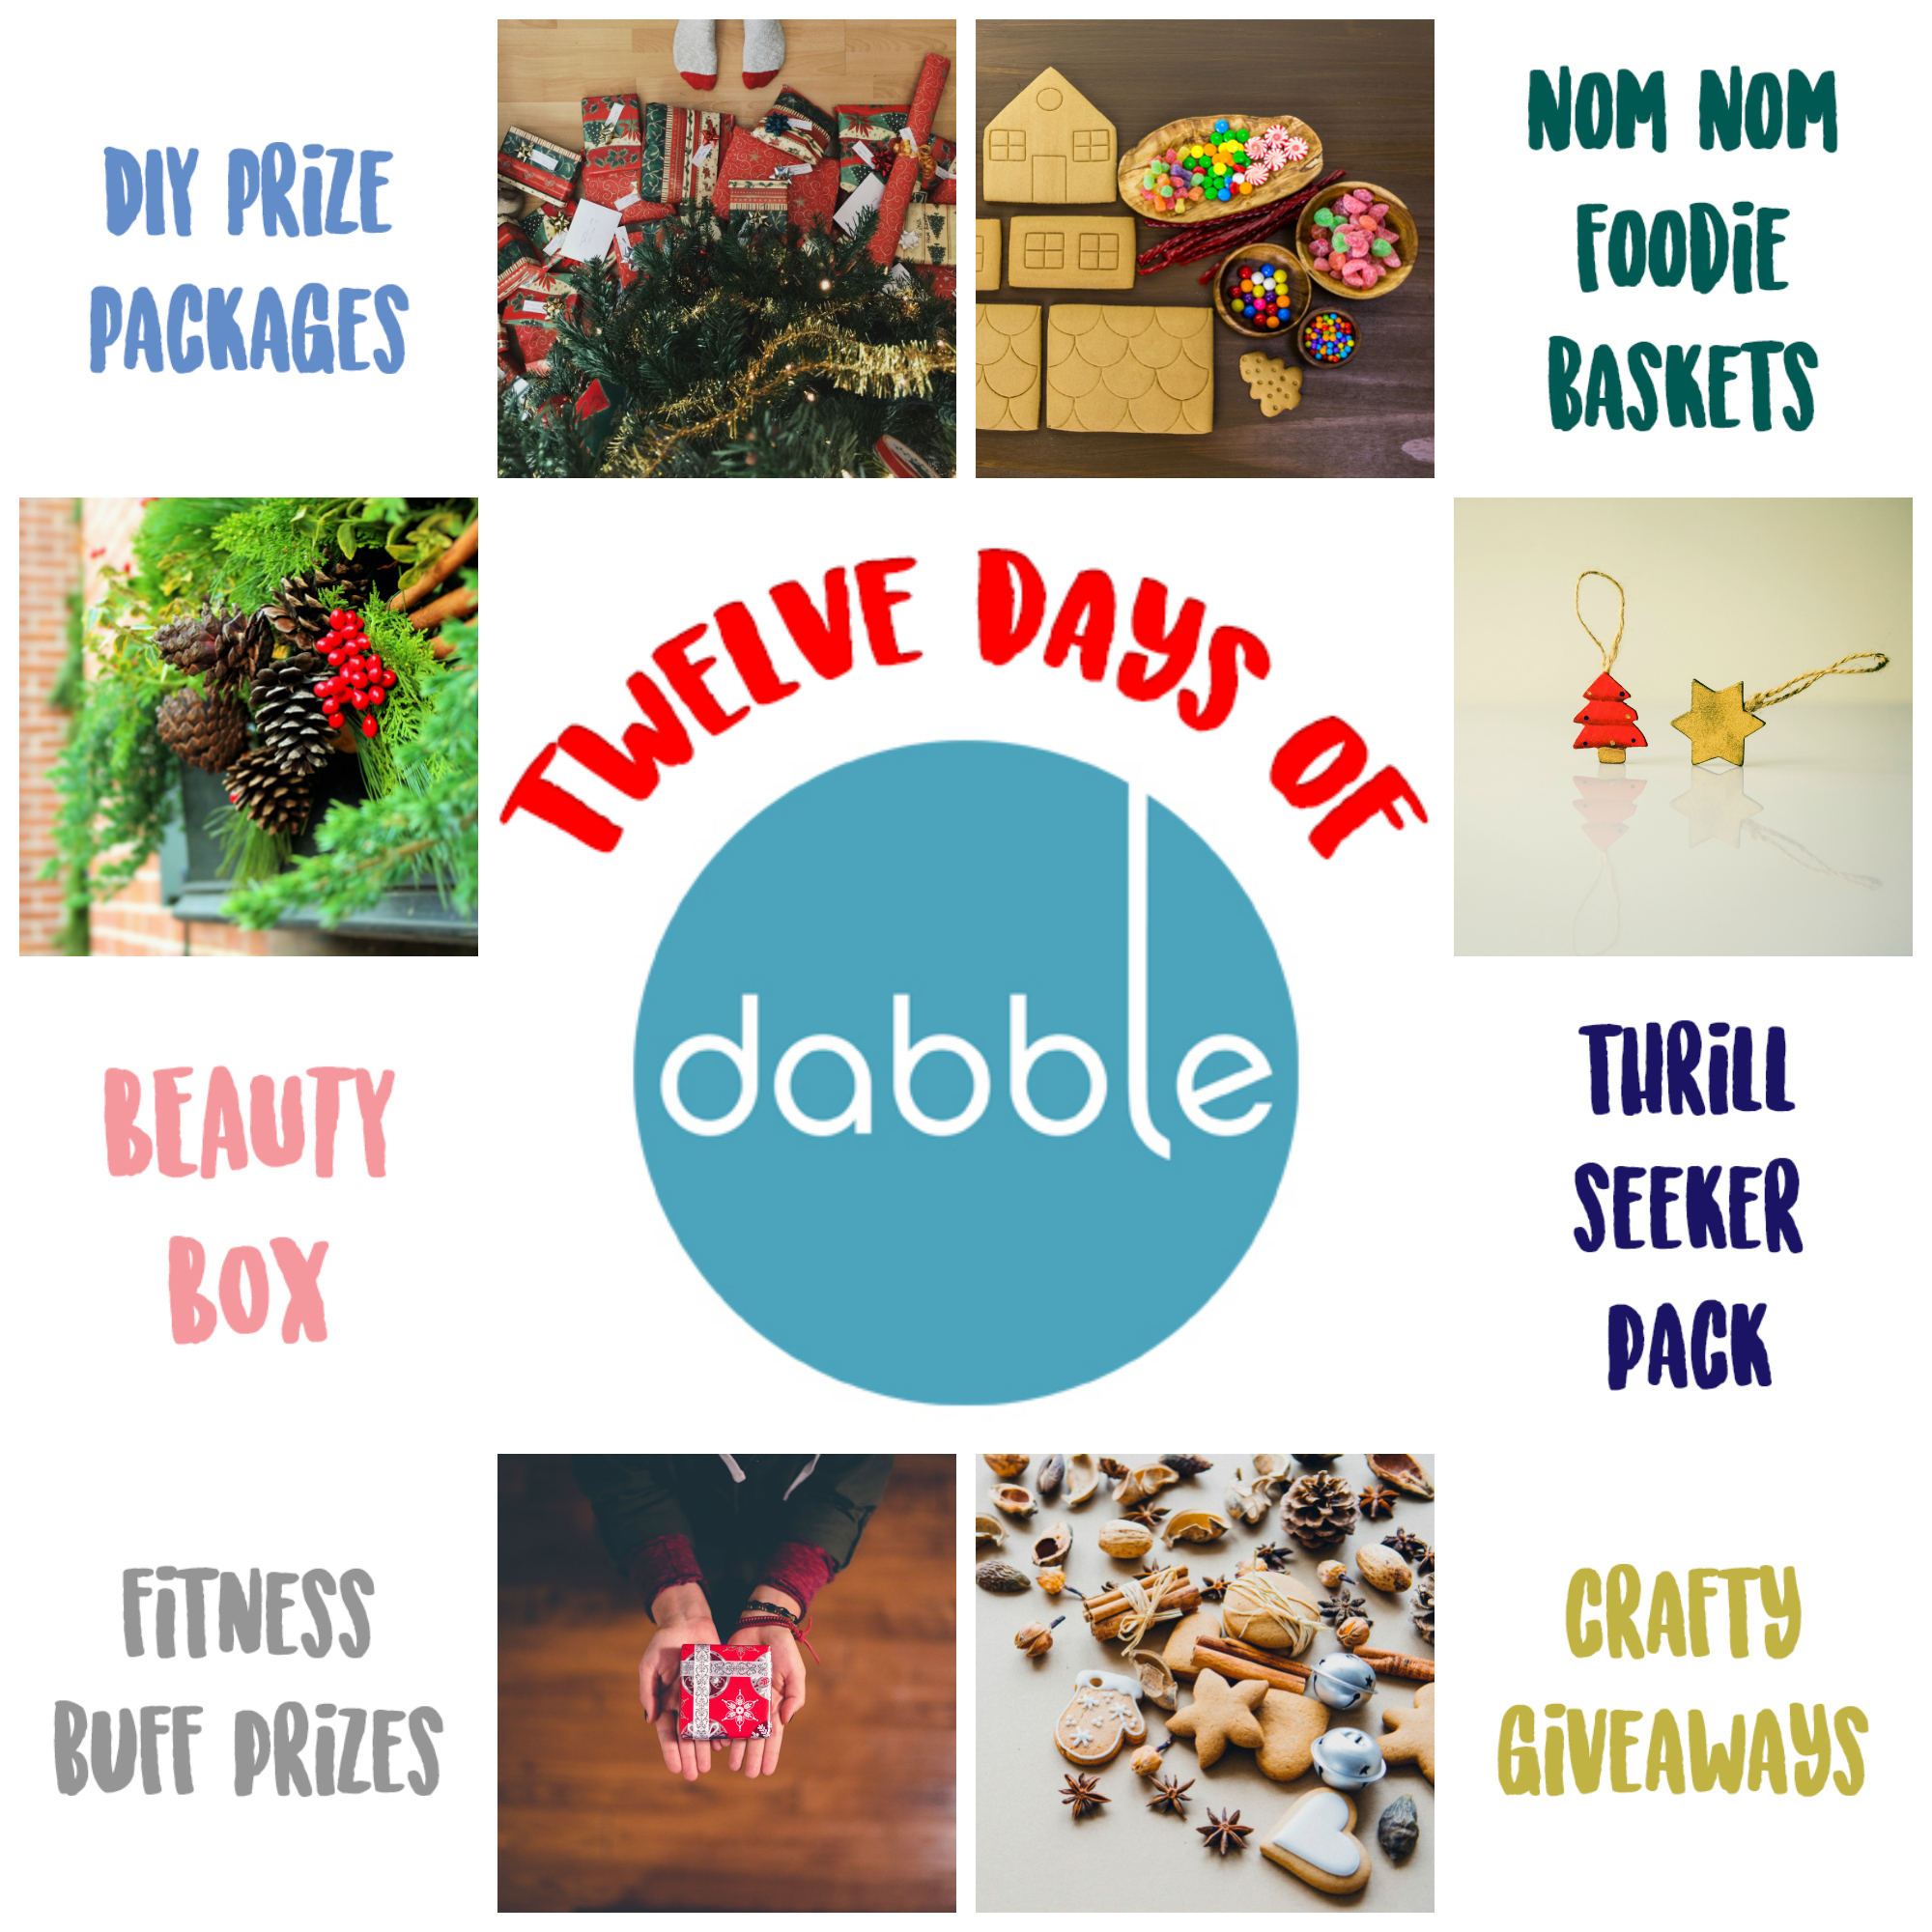 The 12 Days of Dabble